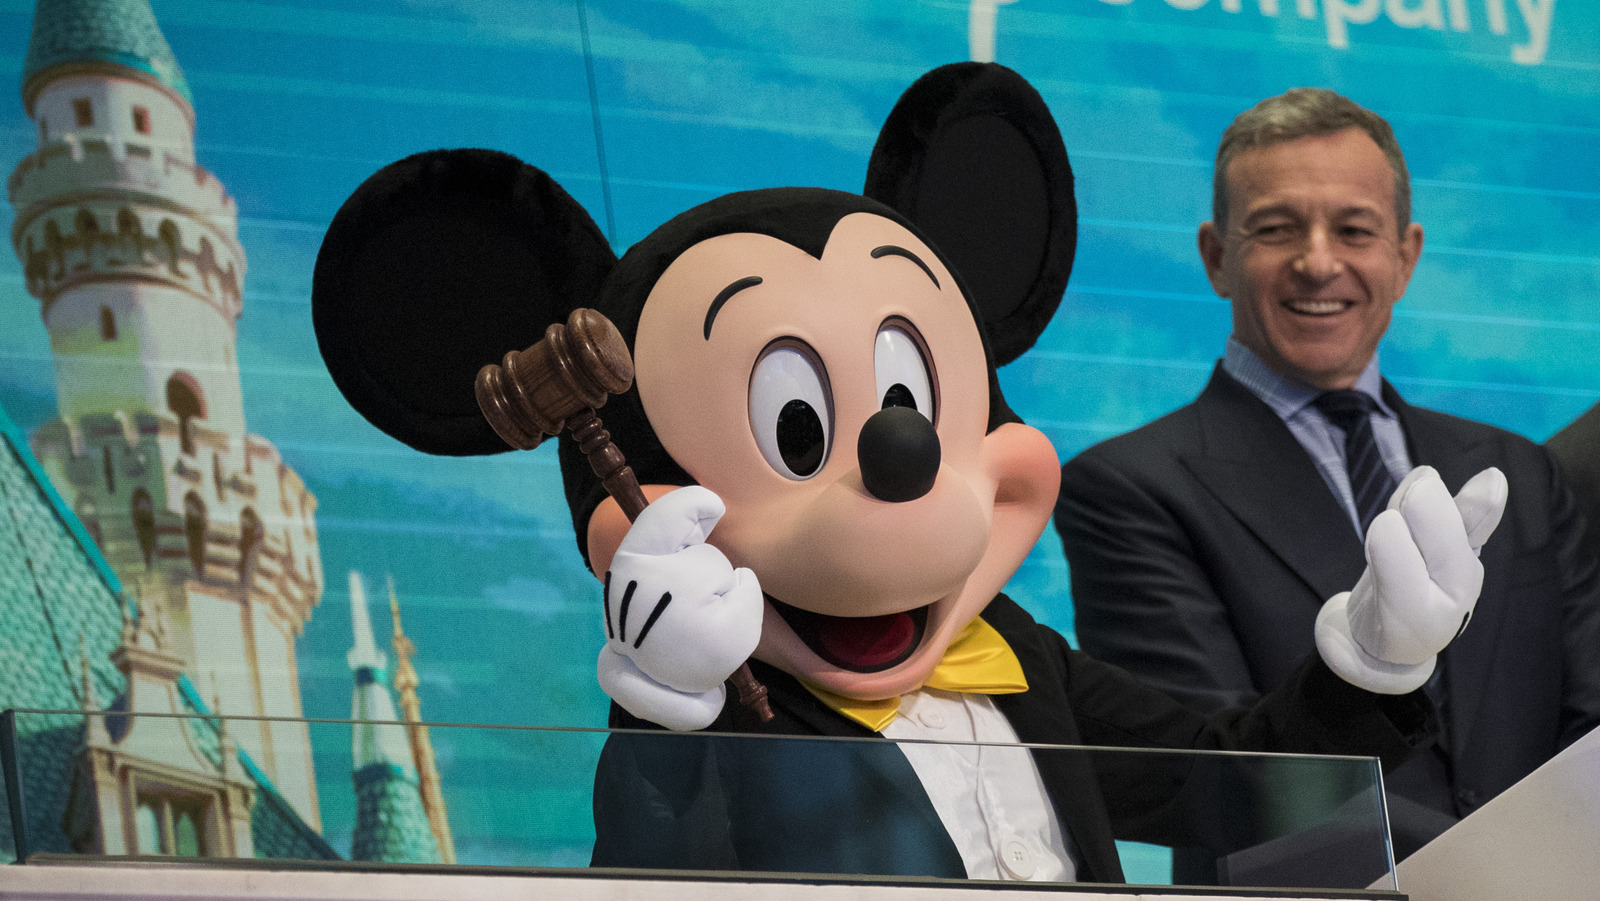 Upcoming Disney movies in 2021 you won't want to miss